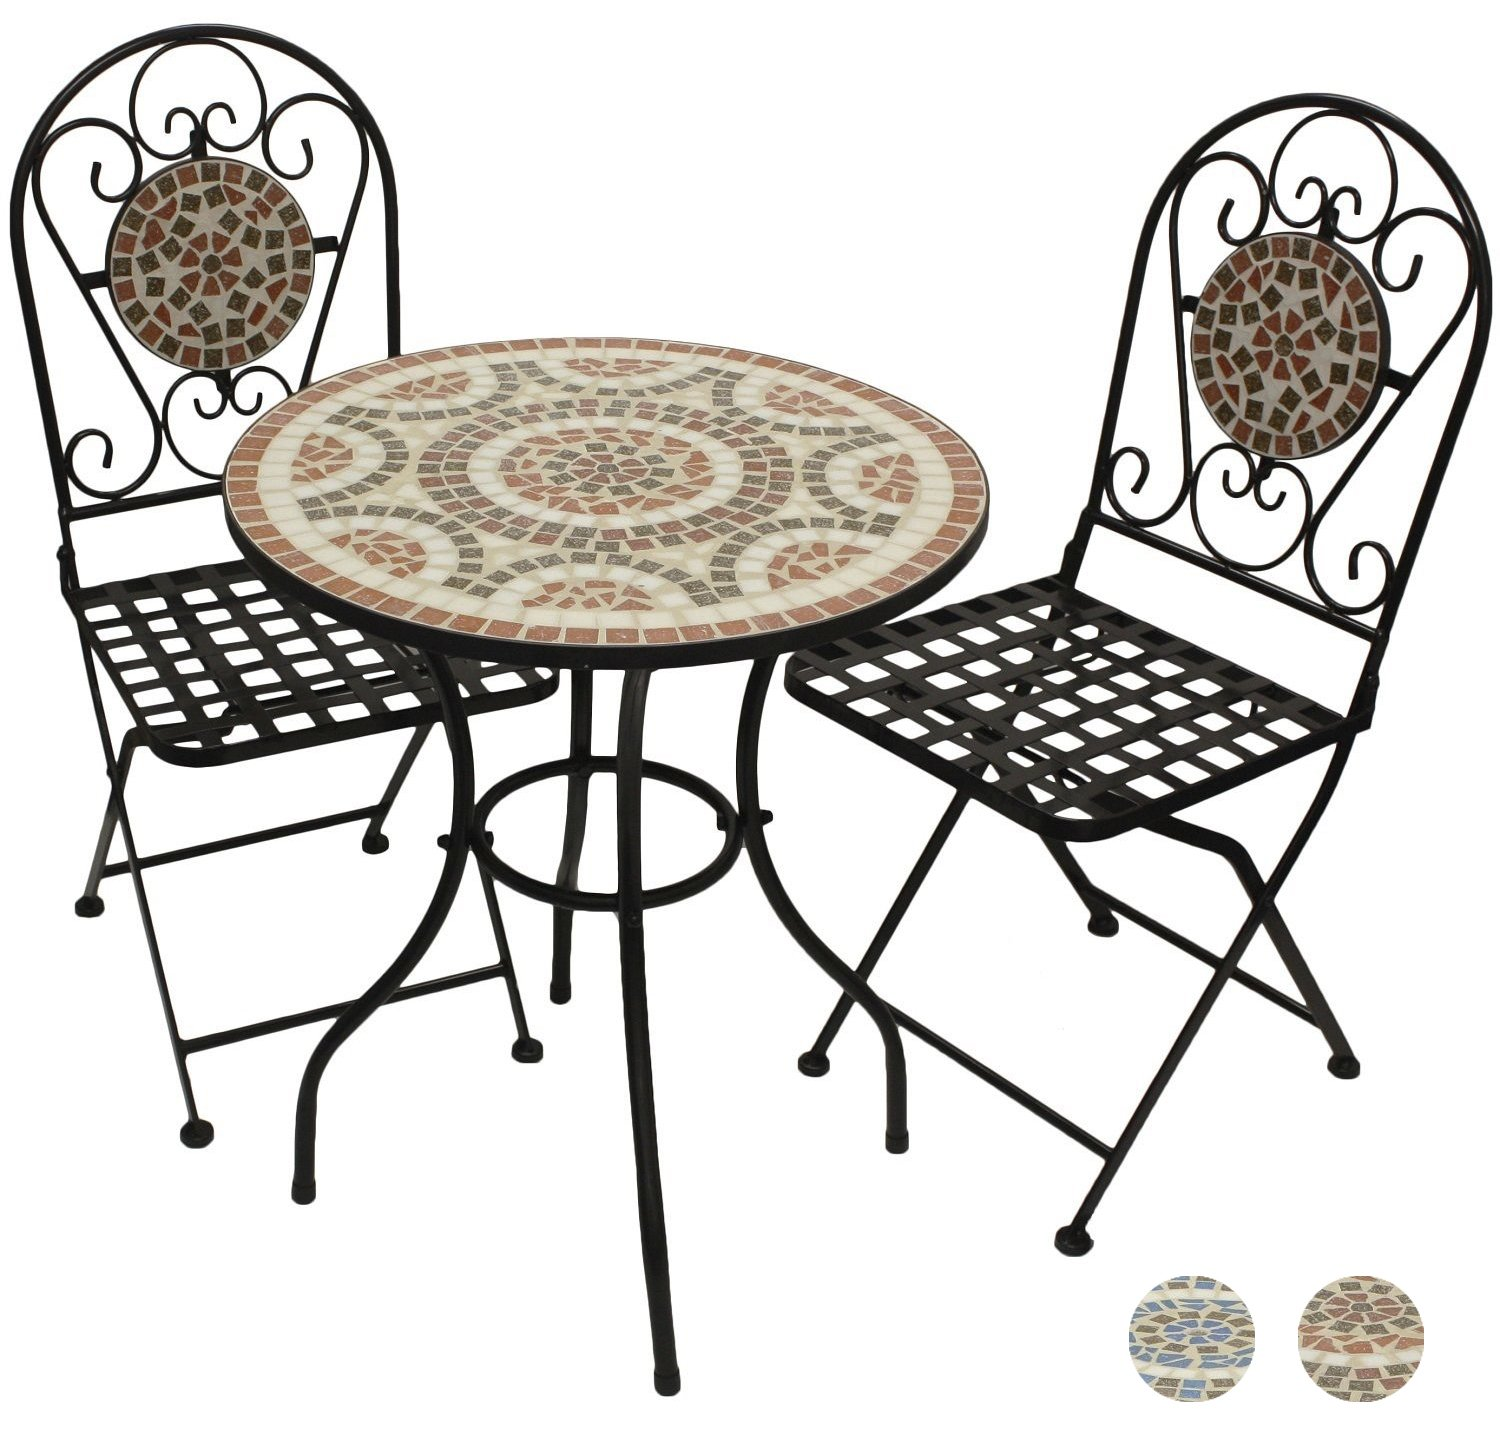 Woodside Terracotta Mosaic Garden Table And Folding Chair Set Outdoor  Dining Furniture: Amazon.co.uk: Garden U0026 Outdoors